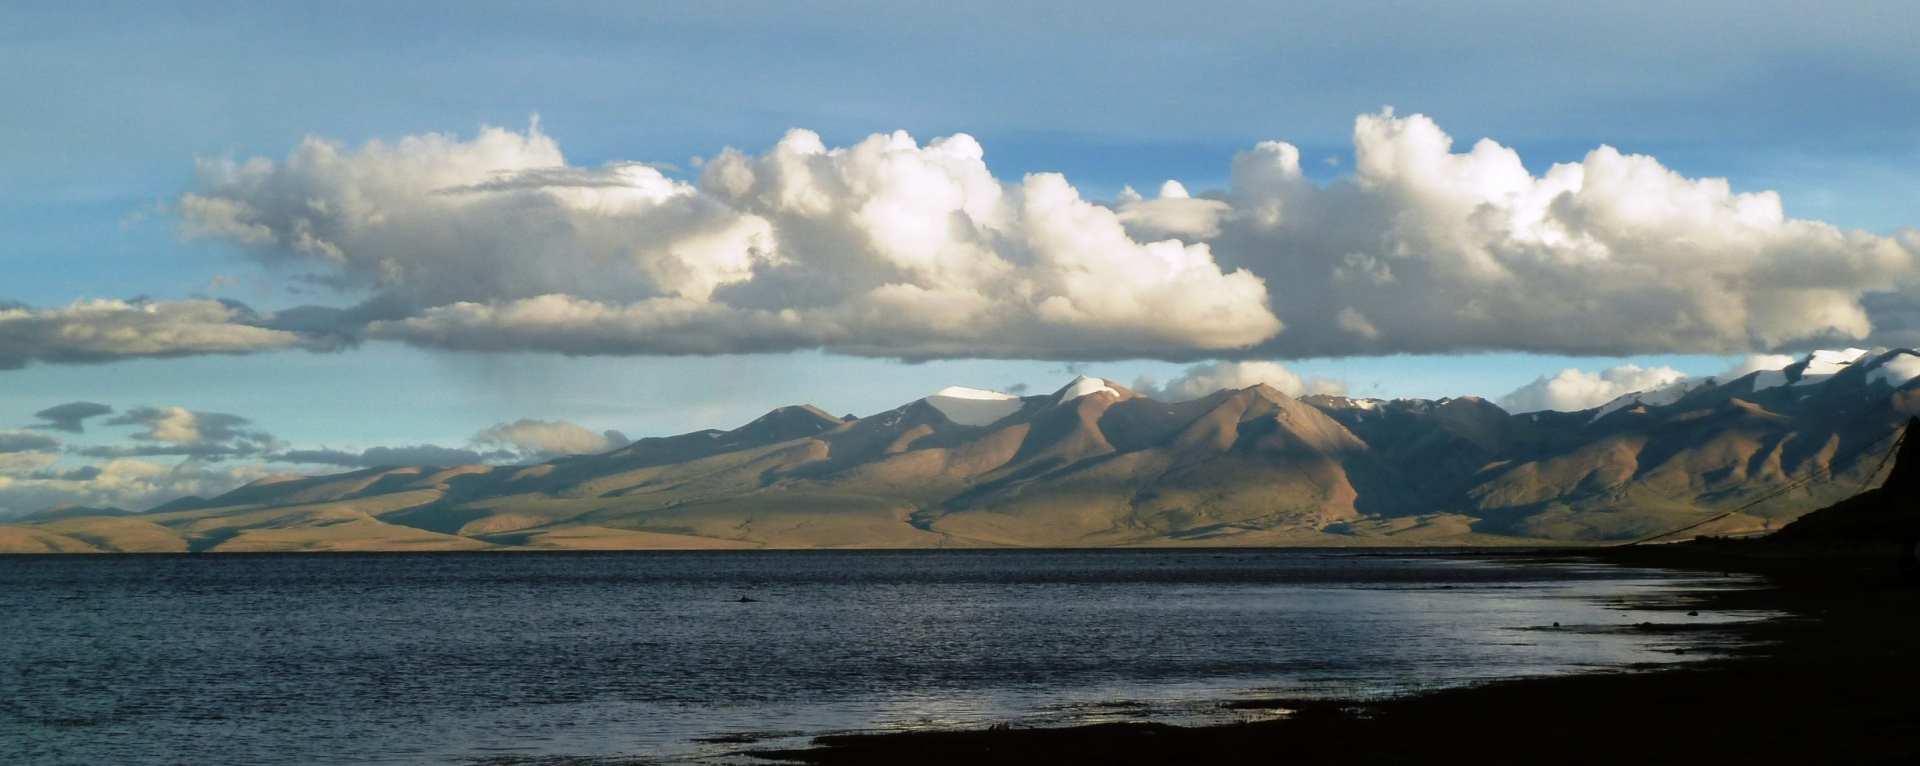 Holy lake Manasarovar view with fairytale clouds.